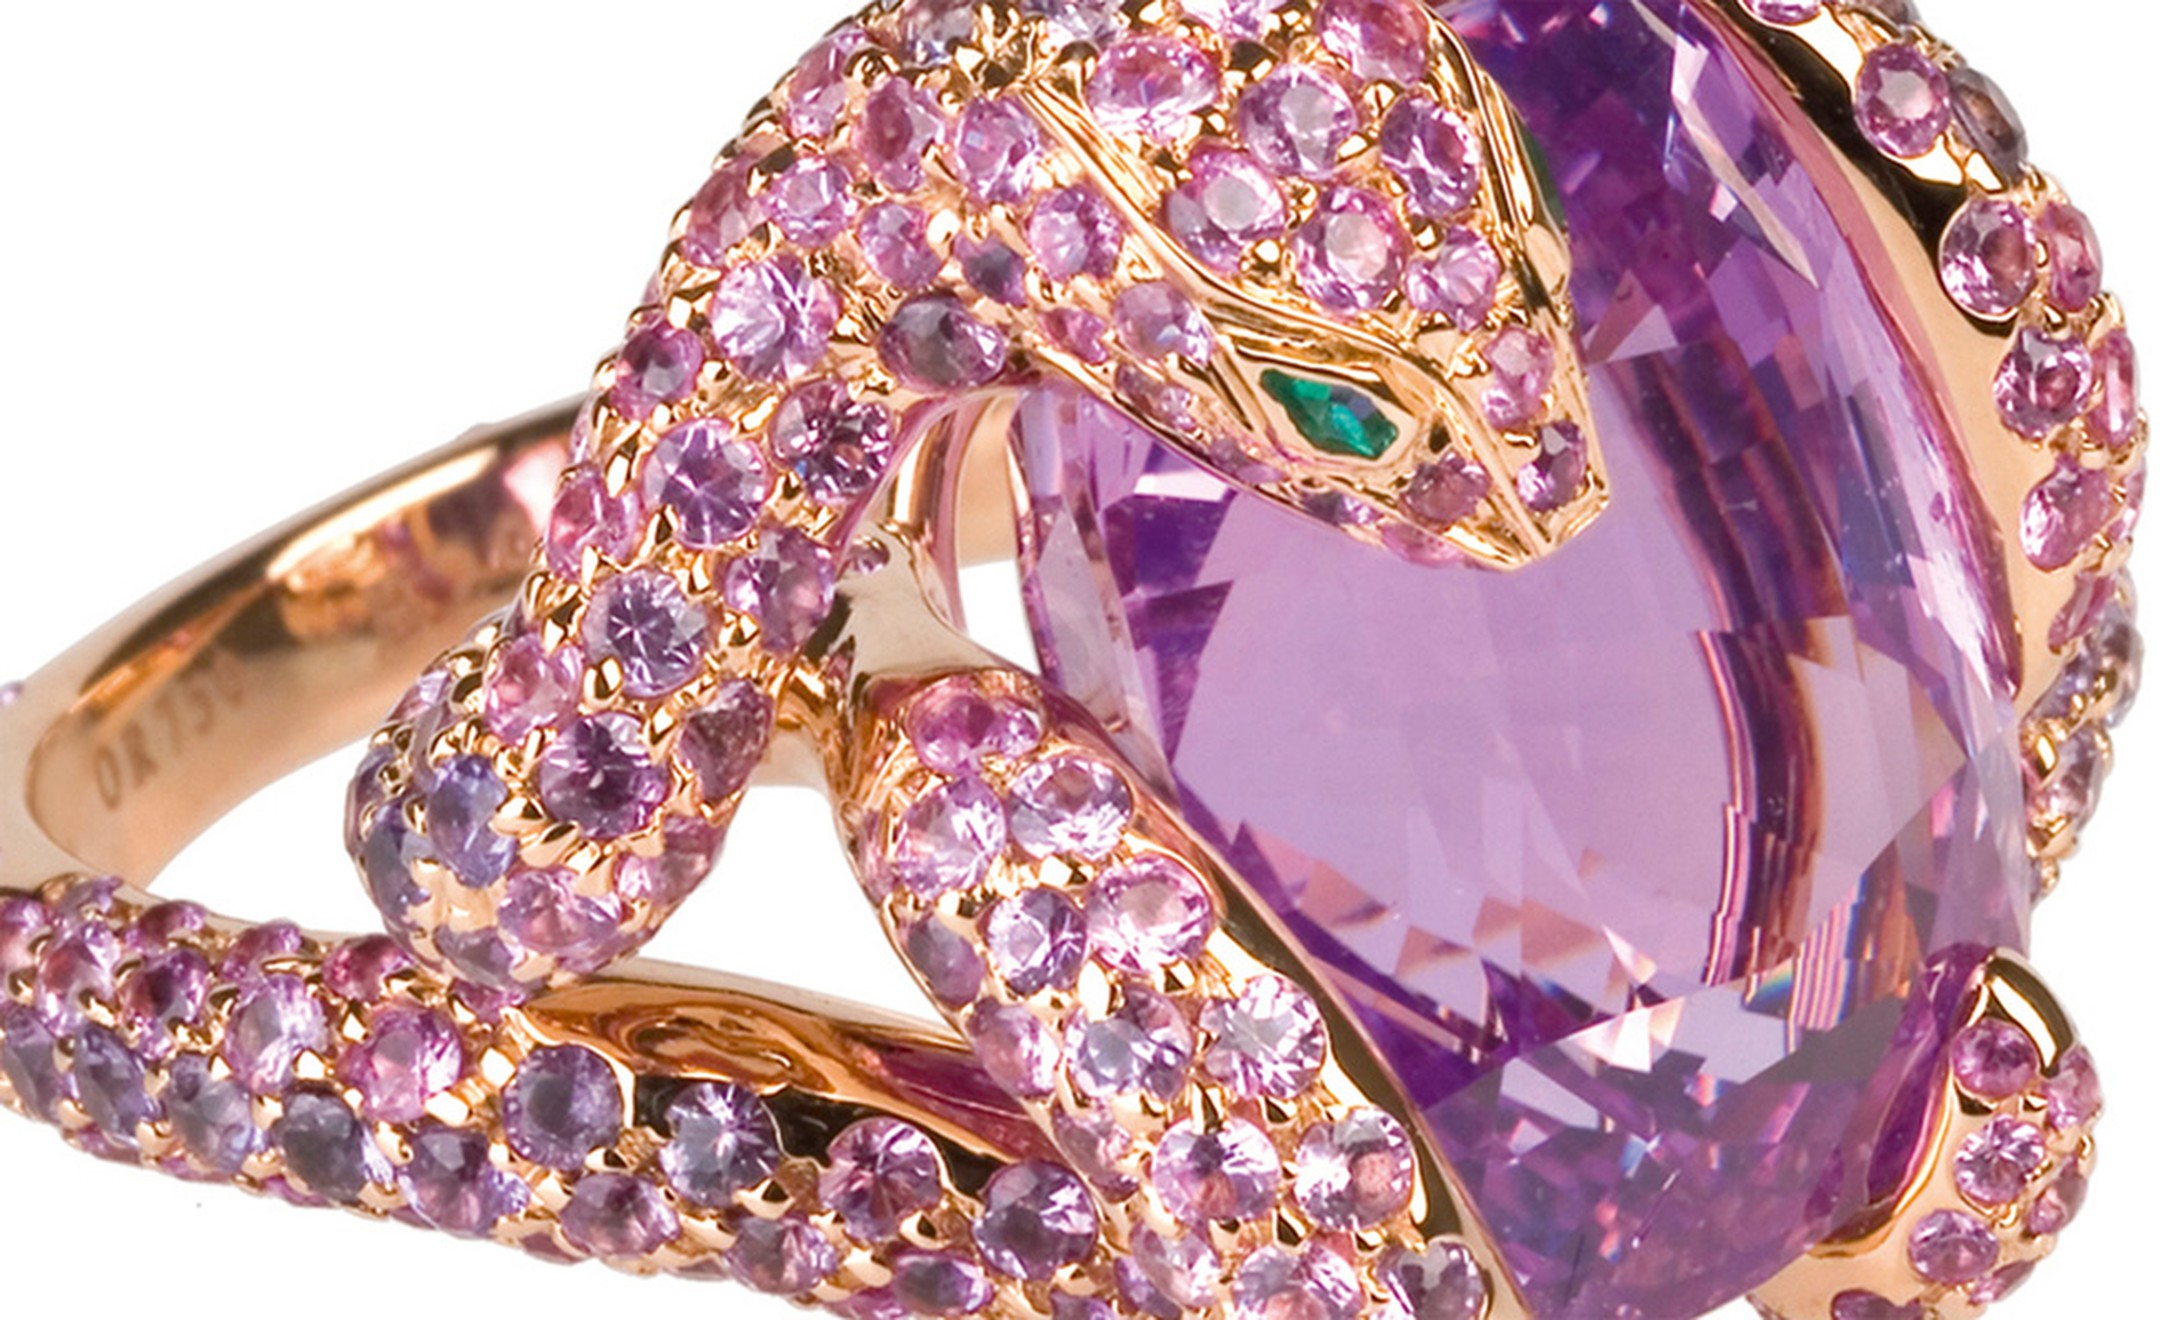 Detail of the Boucheron Python ring with a Ceylon pink 17.36 carats cushion cut sapphire and 330 pink and 51 purple sapphires set into rose gold. Price: £244,000